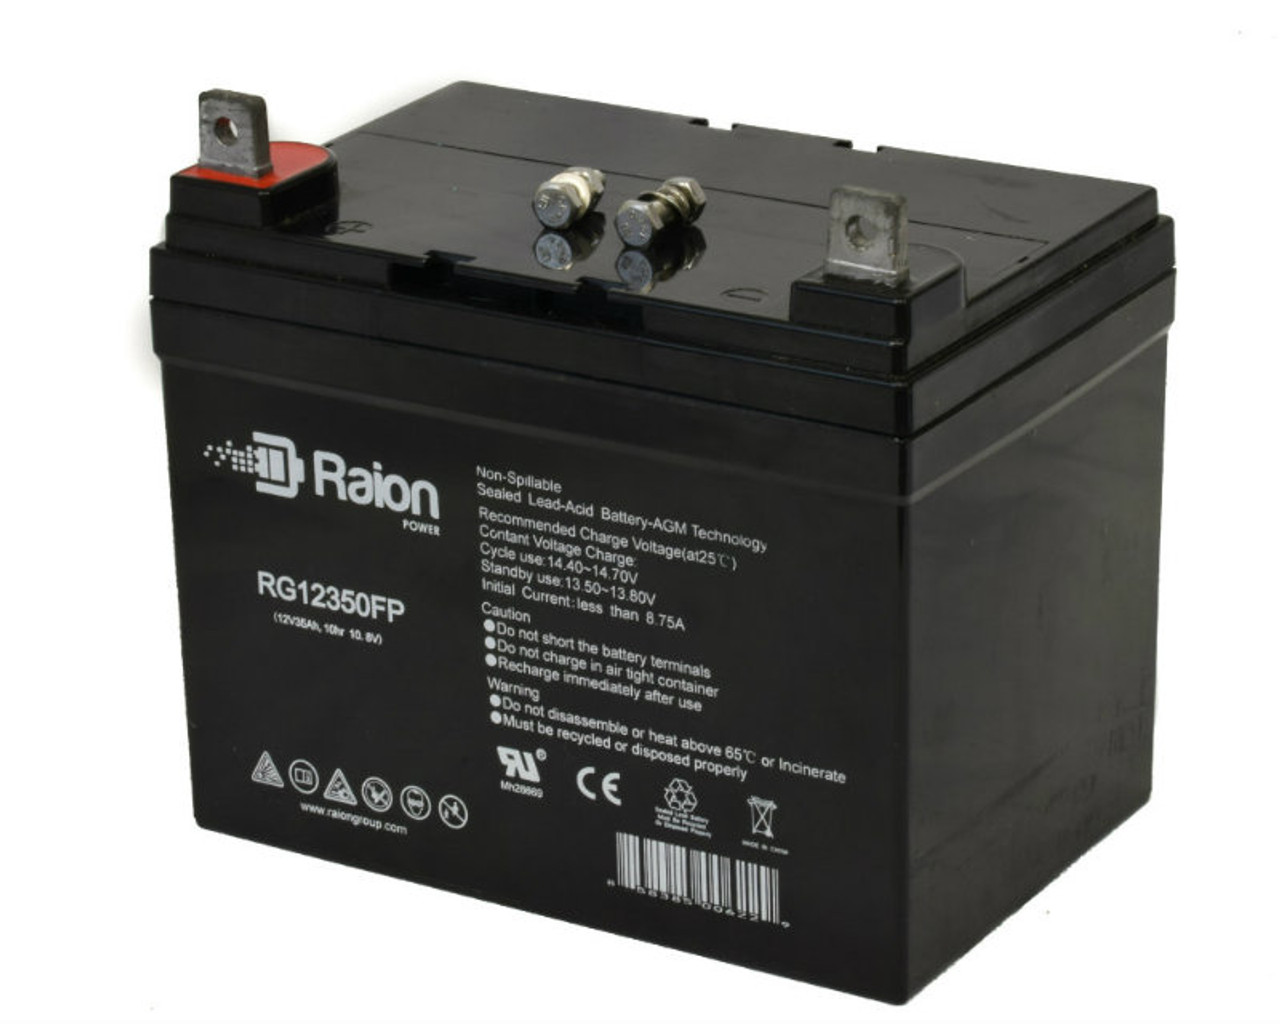 RG12350FP Sealed Lead Acid Battery Pack For Pride Shoprider Tri Wheeler Mobility Scooter